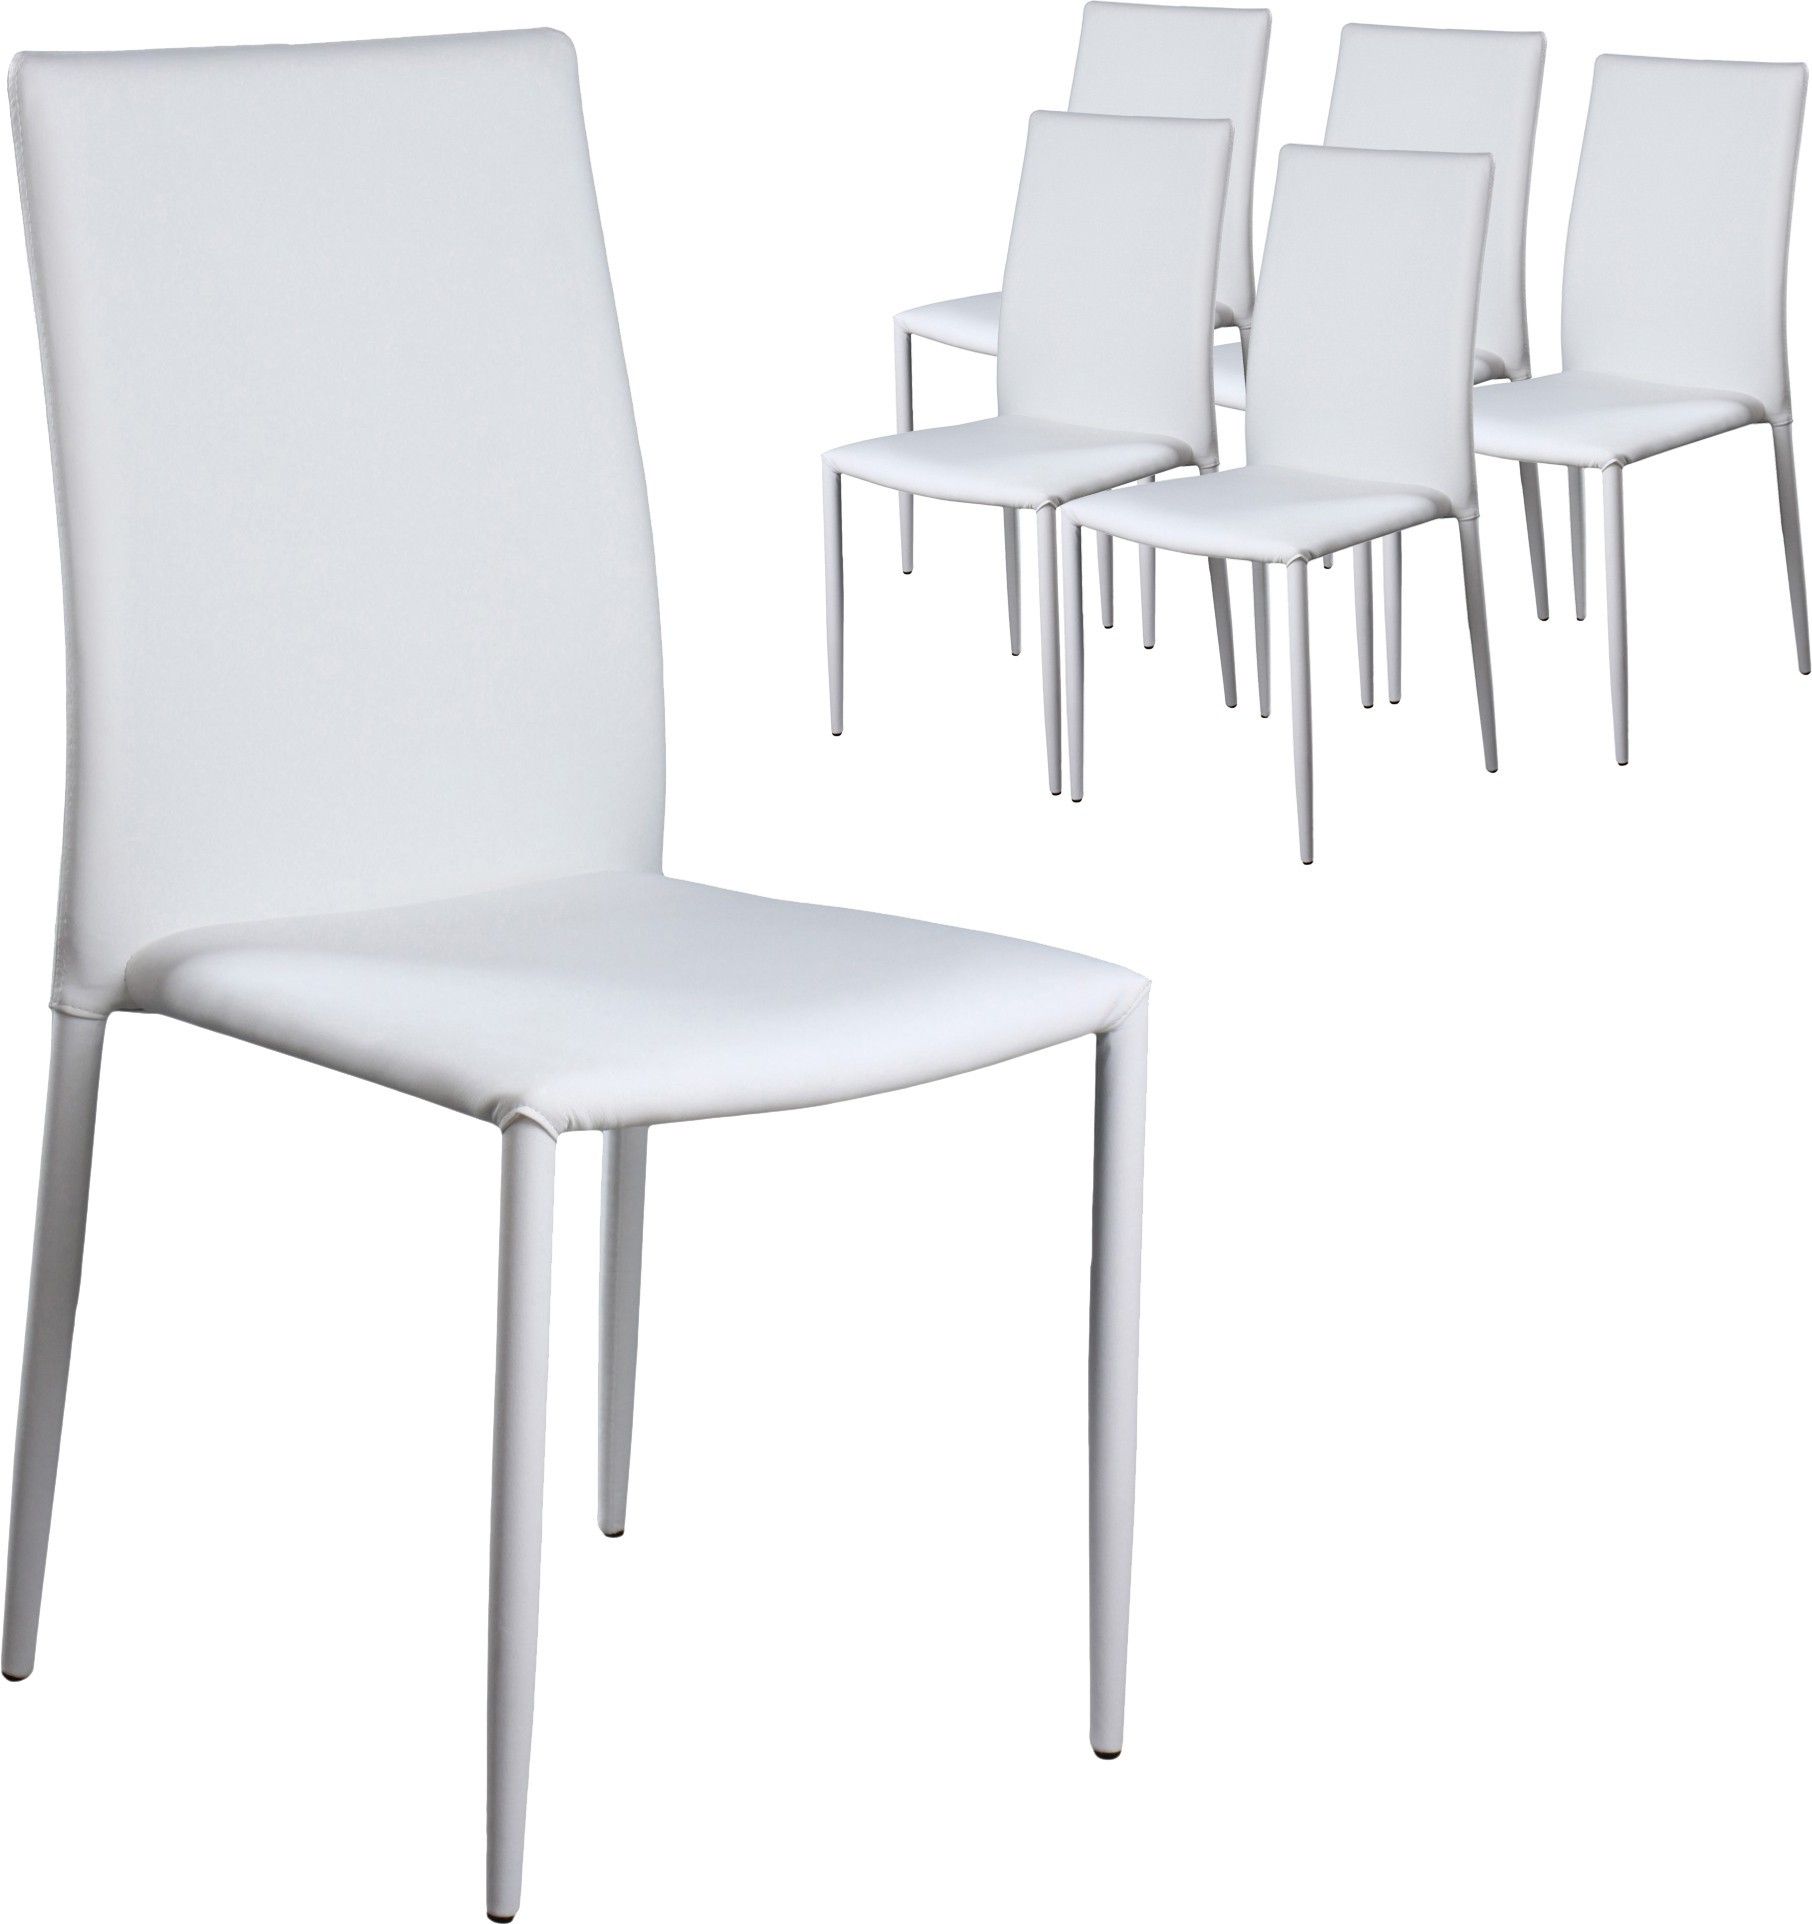 Chaise empilable simili blanche wuka for Chaise simili